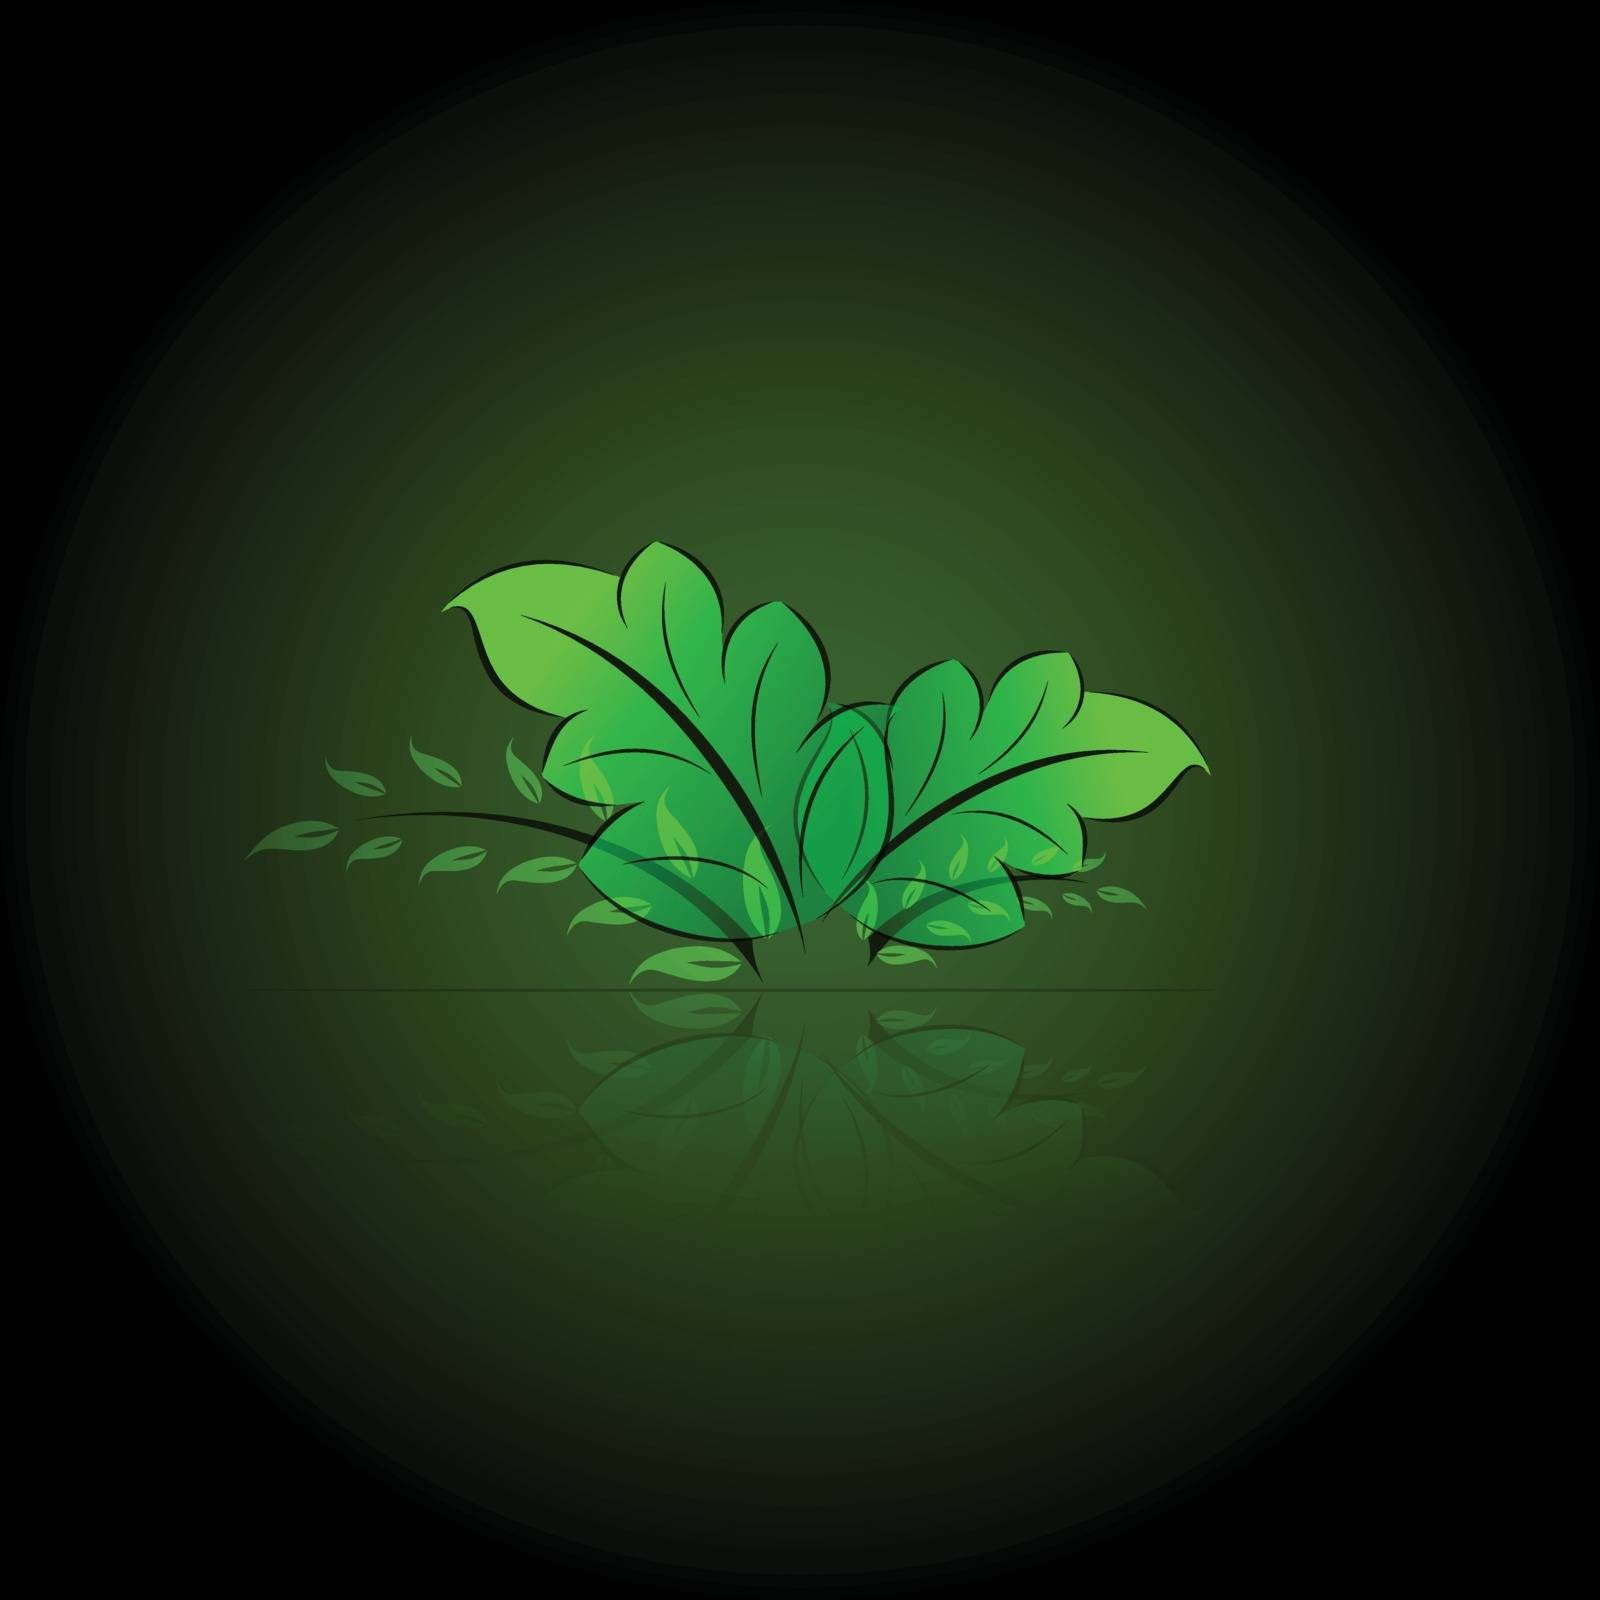 Green leaves eps10 by WaD